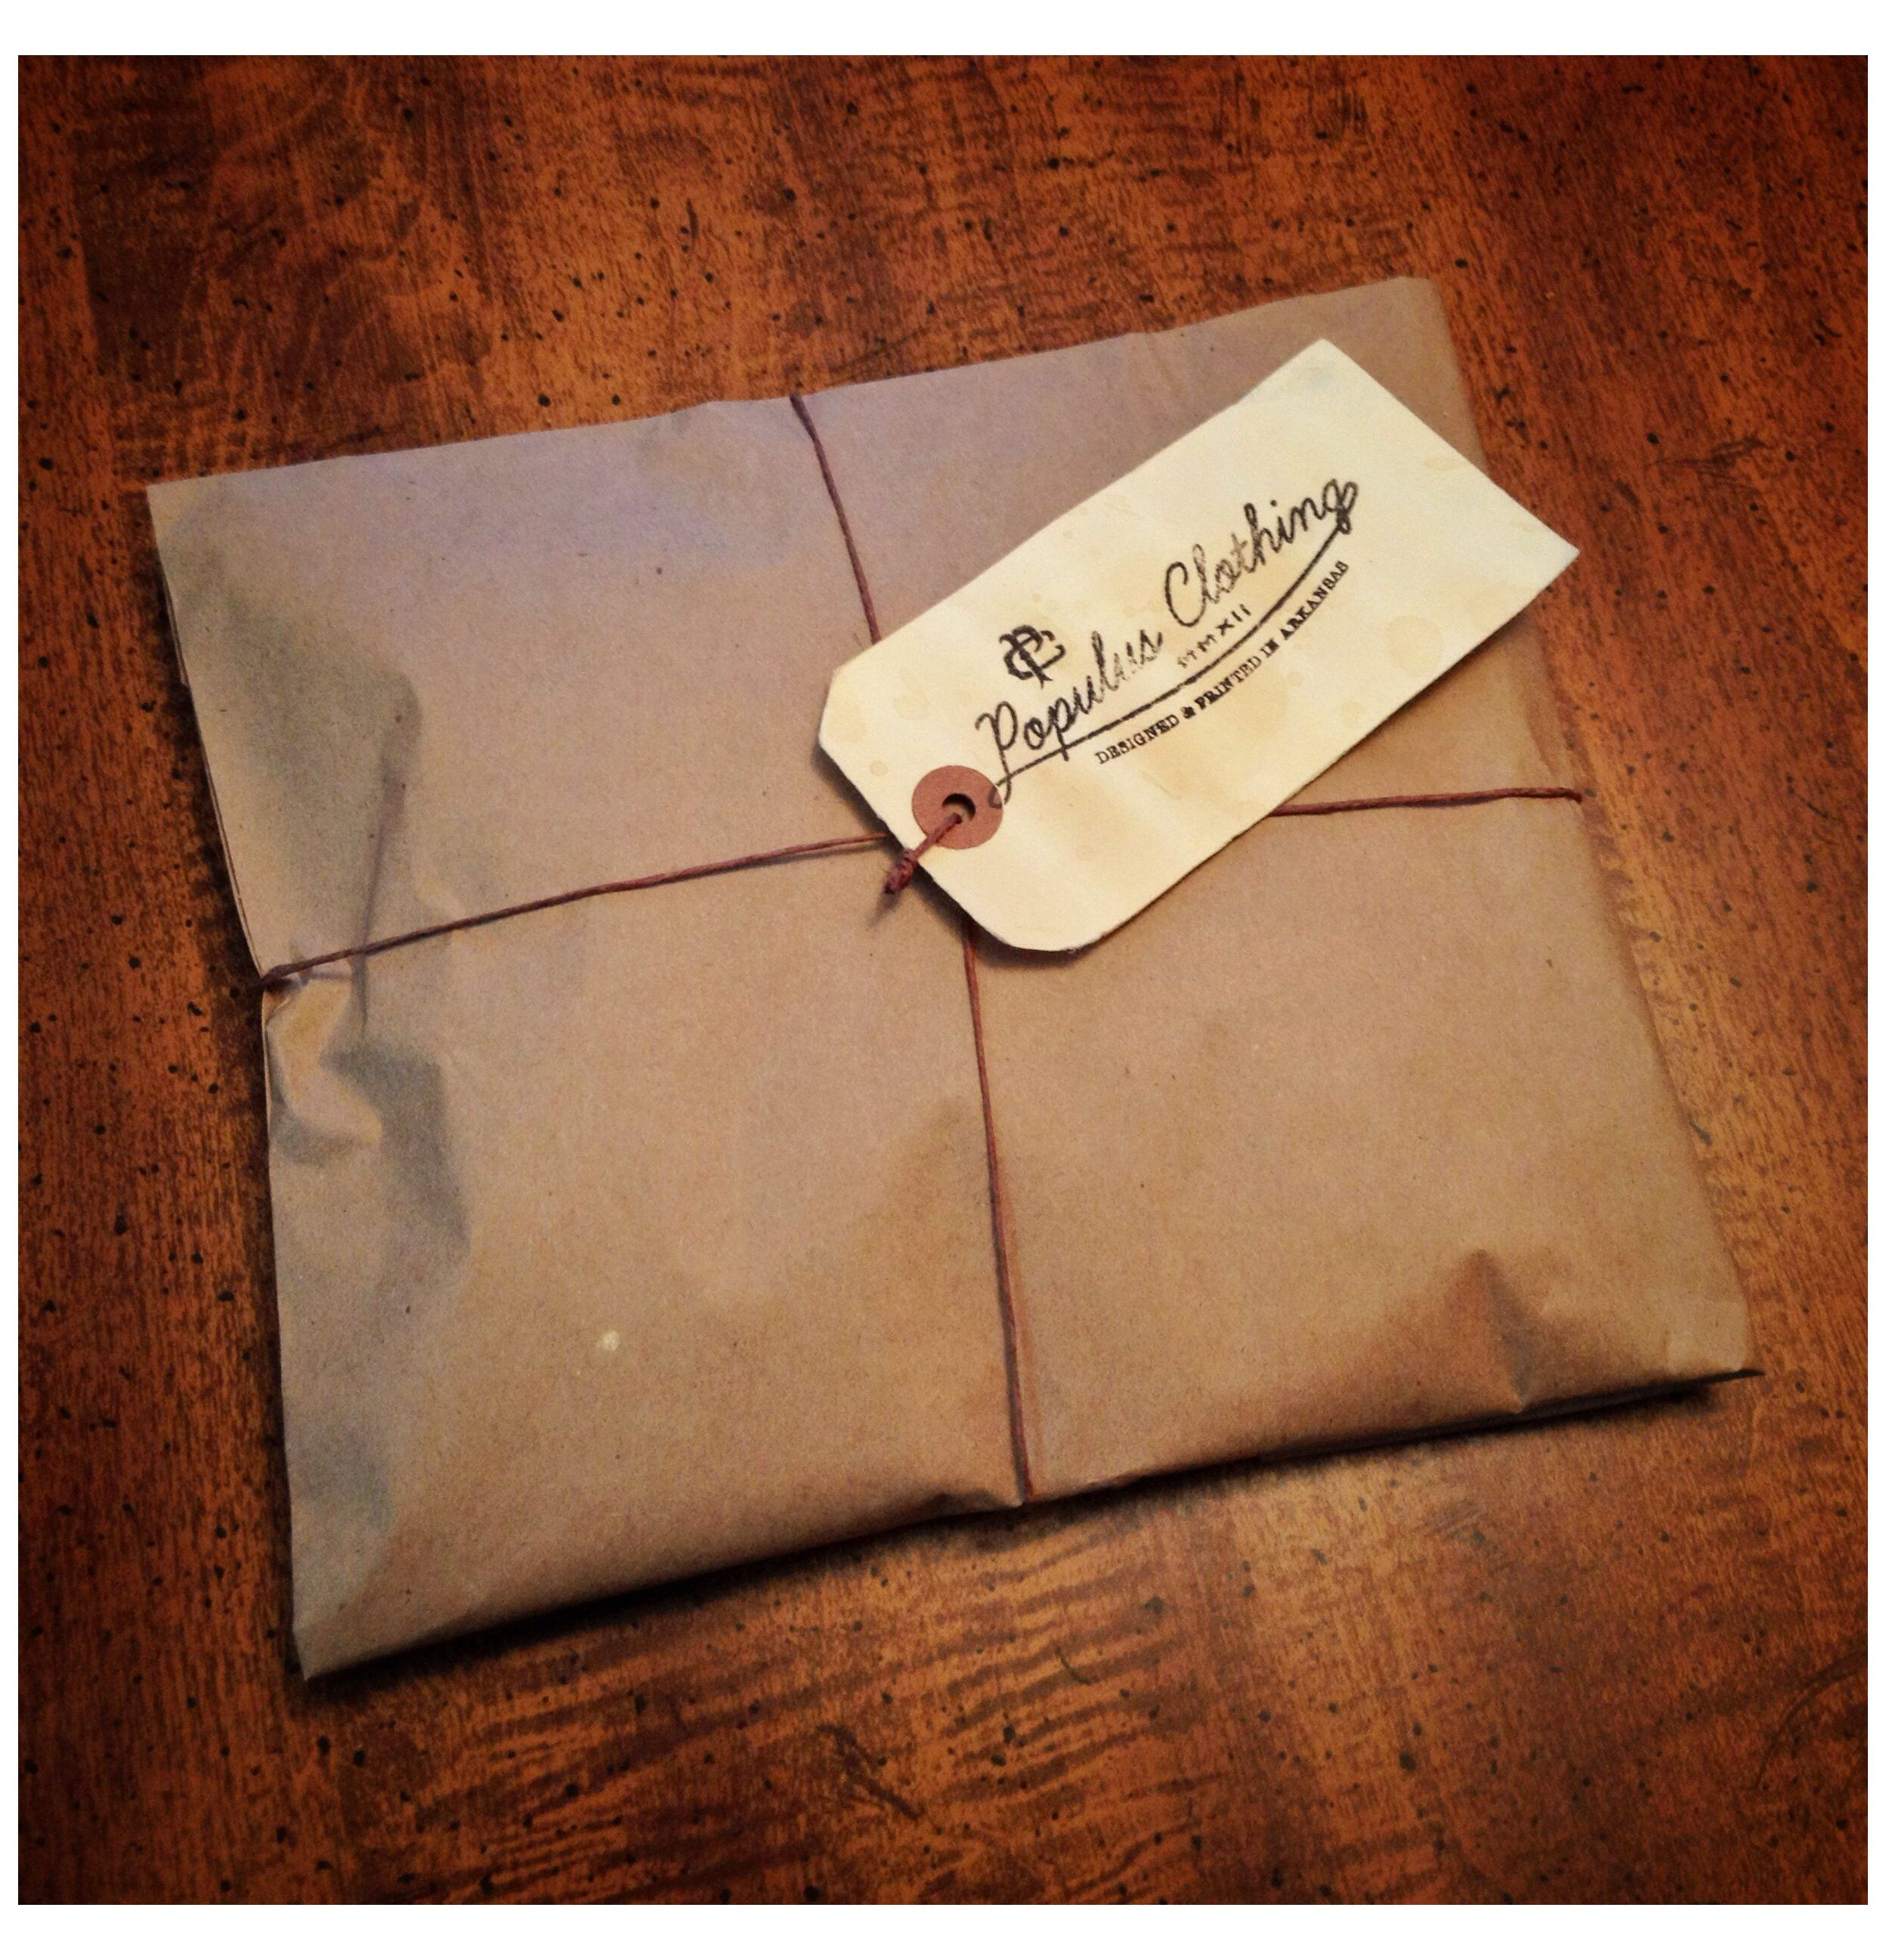 Vintage Clothing Packaging In 2020 Clothing Packaging Shirt Packaging Vintage Packaging